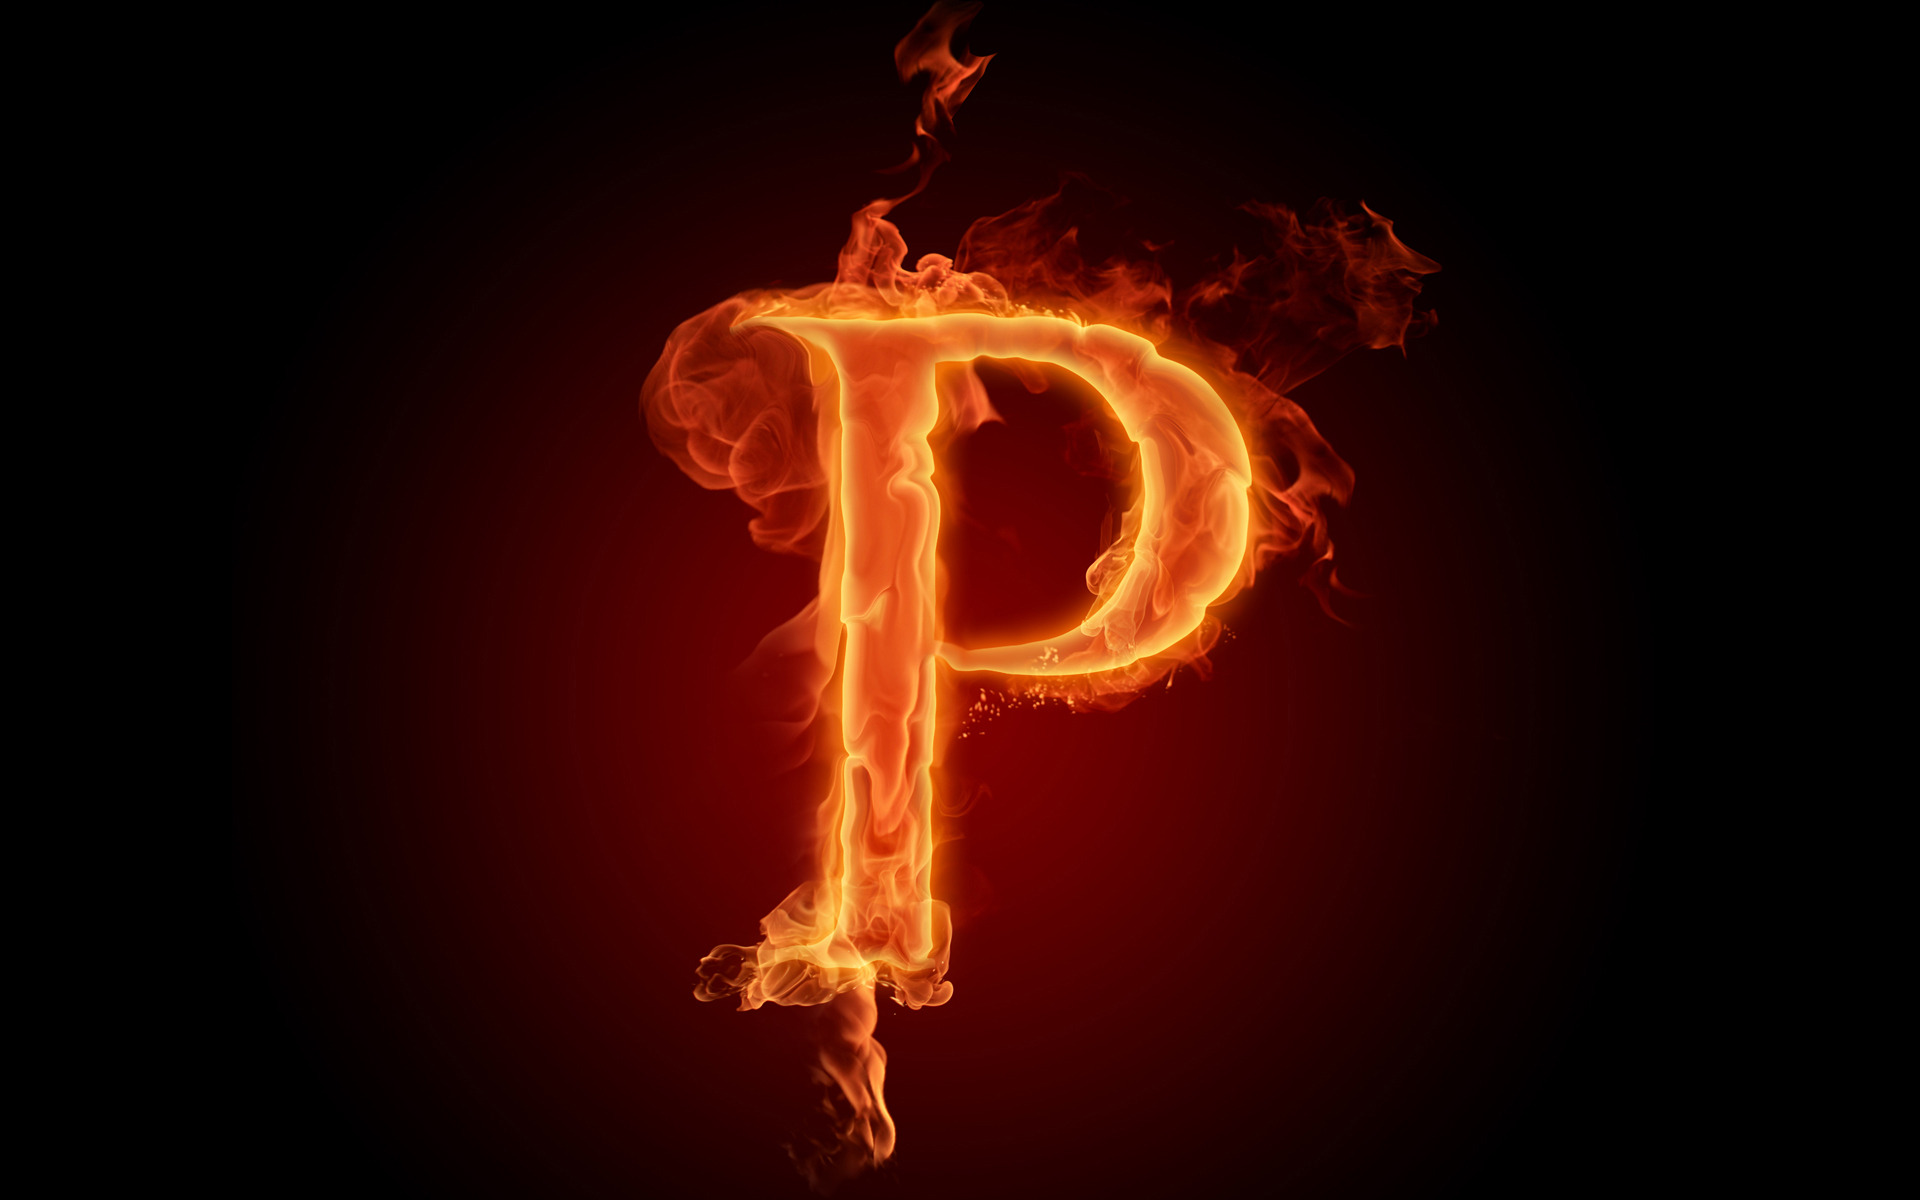 The fiery English alphabet picture P Wallpapers   HD Wallpapers 73630 1920x1200